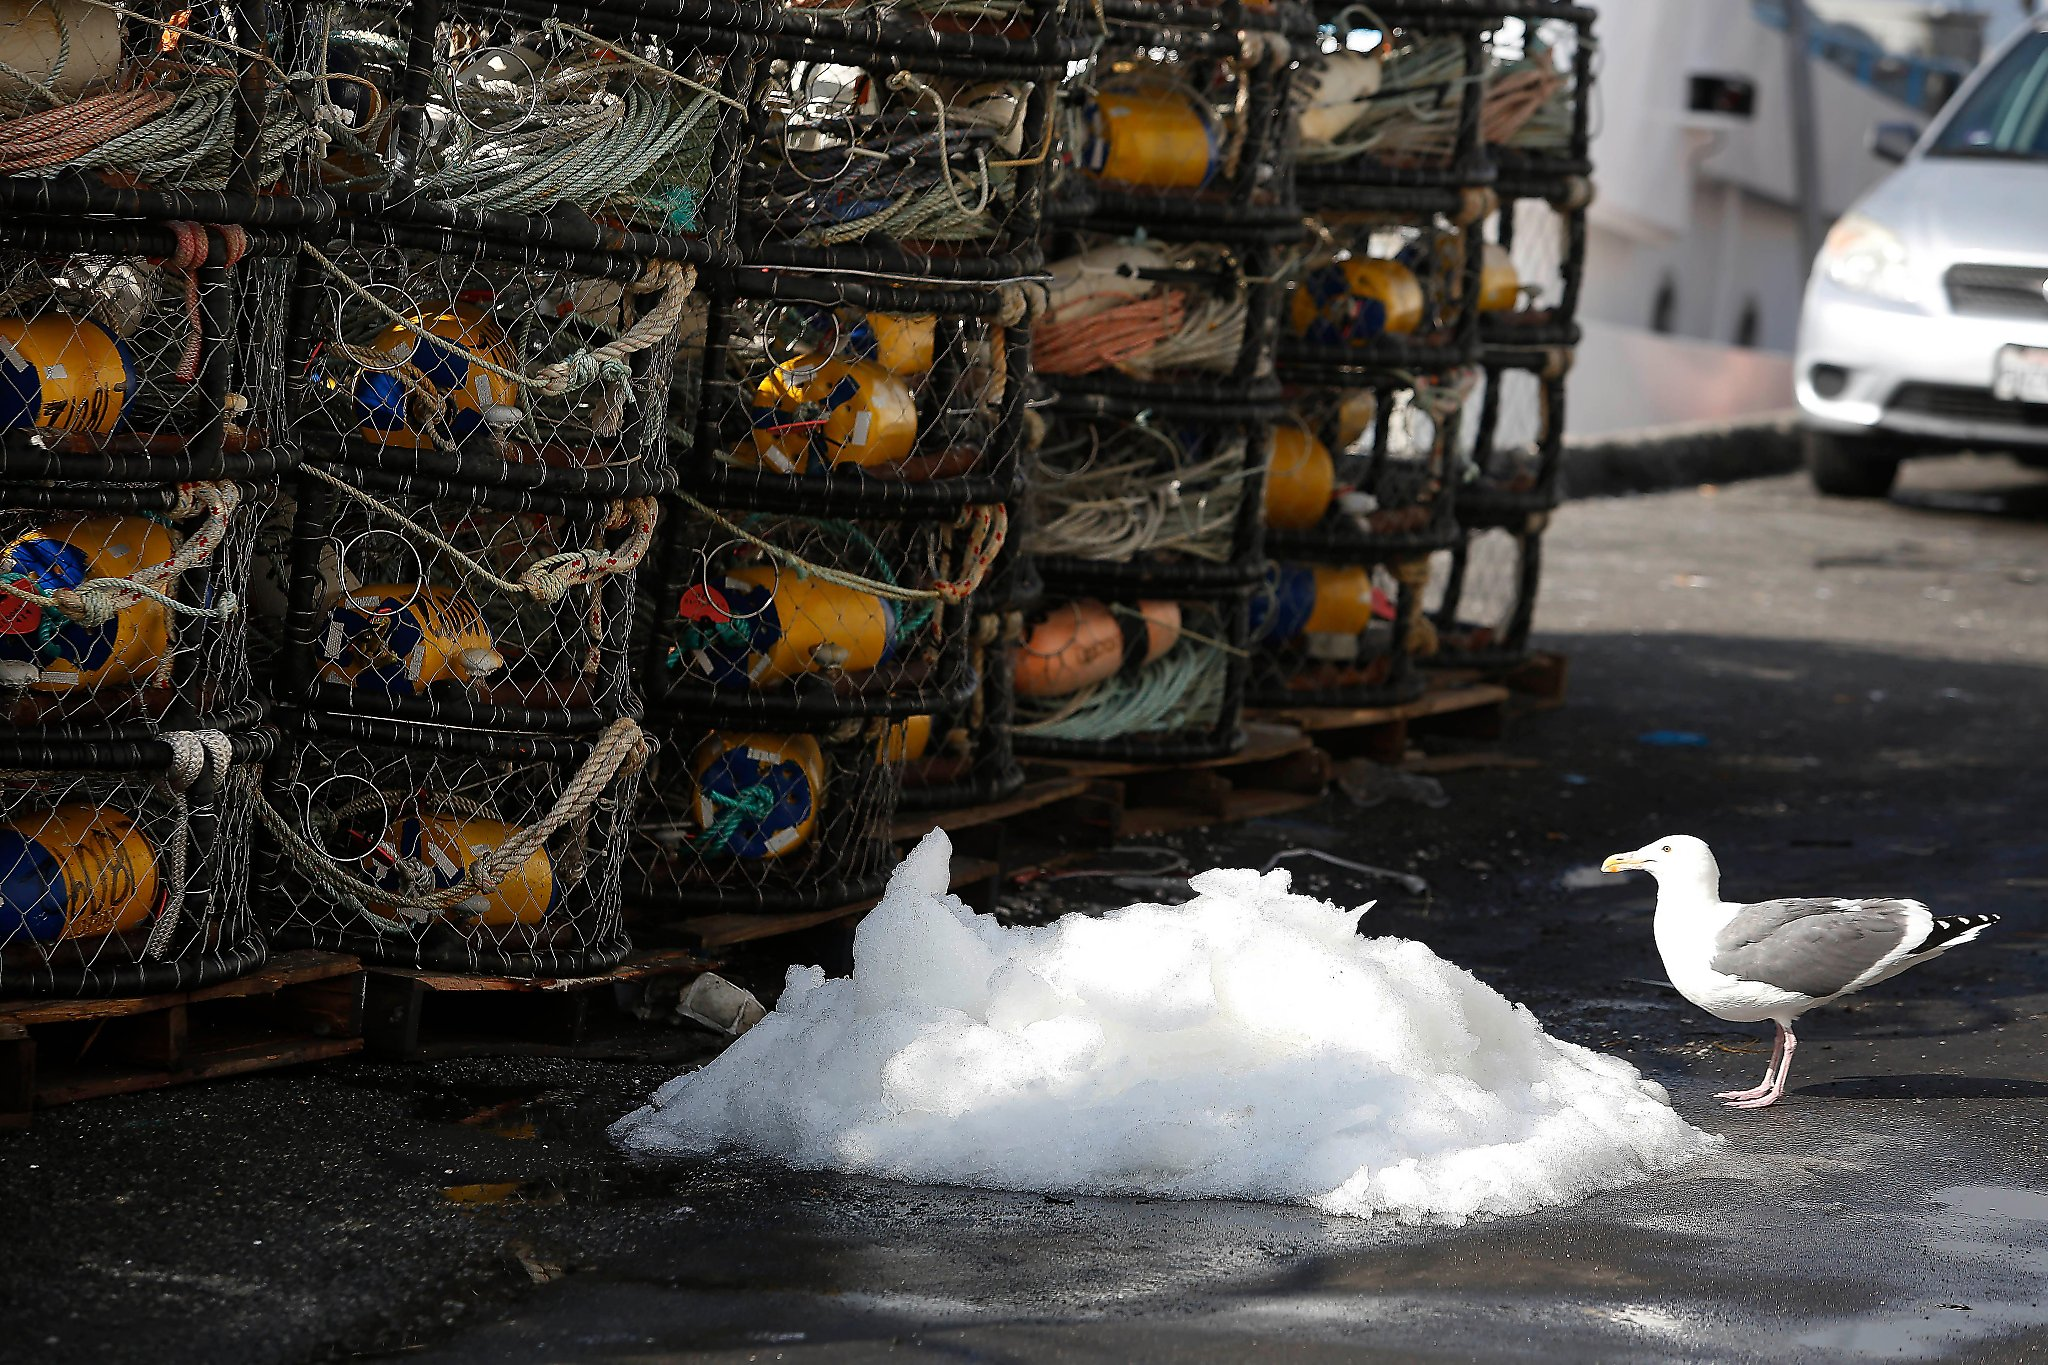 Commercial Dungeness crab season likely to be delayed to Dec. 15